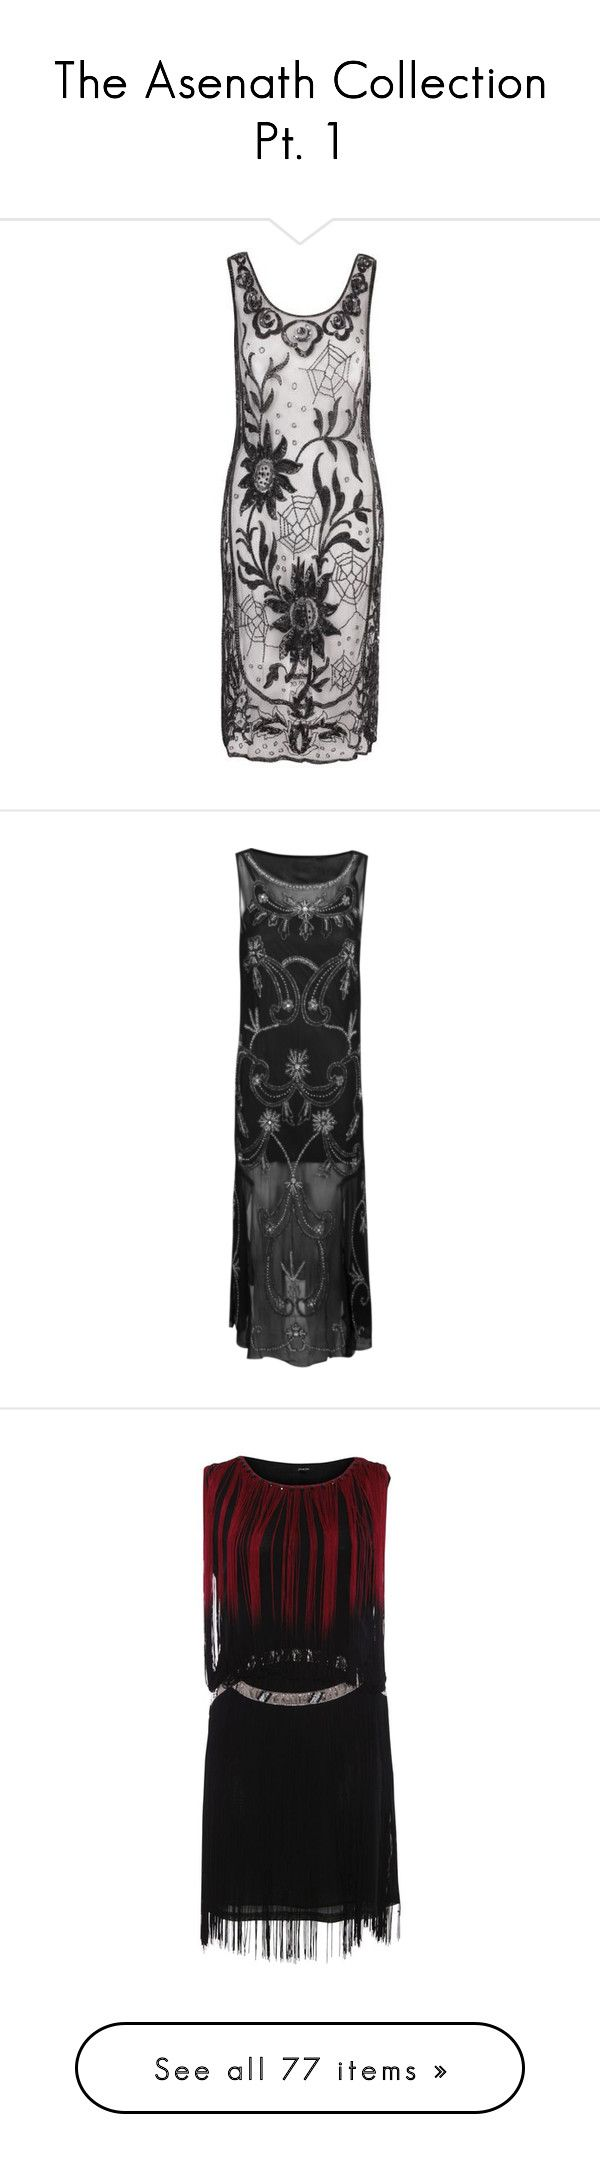 """""""The Asenath Collection Pt. 1"""" by kleenexwoman ❤ liked on Polyvore featuring costumes, dresses, flapper halloween costumes, 1920s costume, 1920s halloween costumes, black costume, gatsby halloween costumes, gowns, black and floral print maxi dress"""